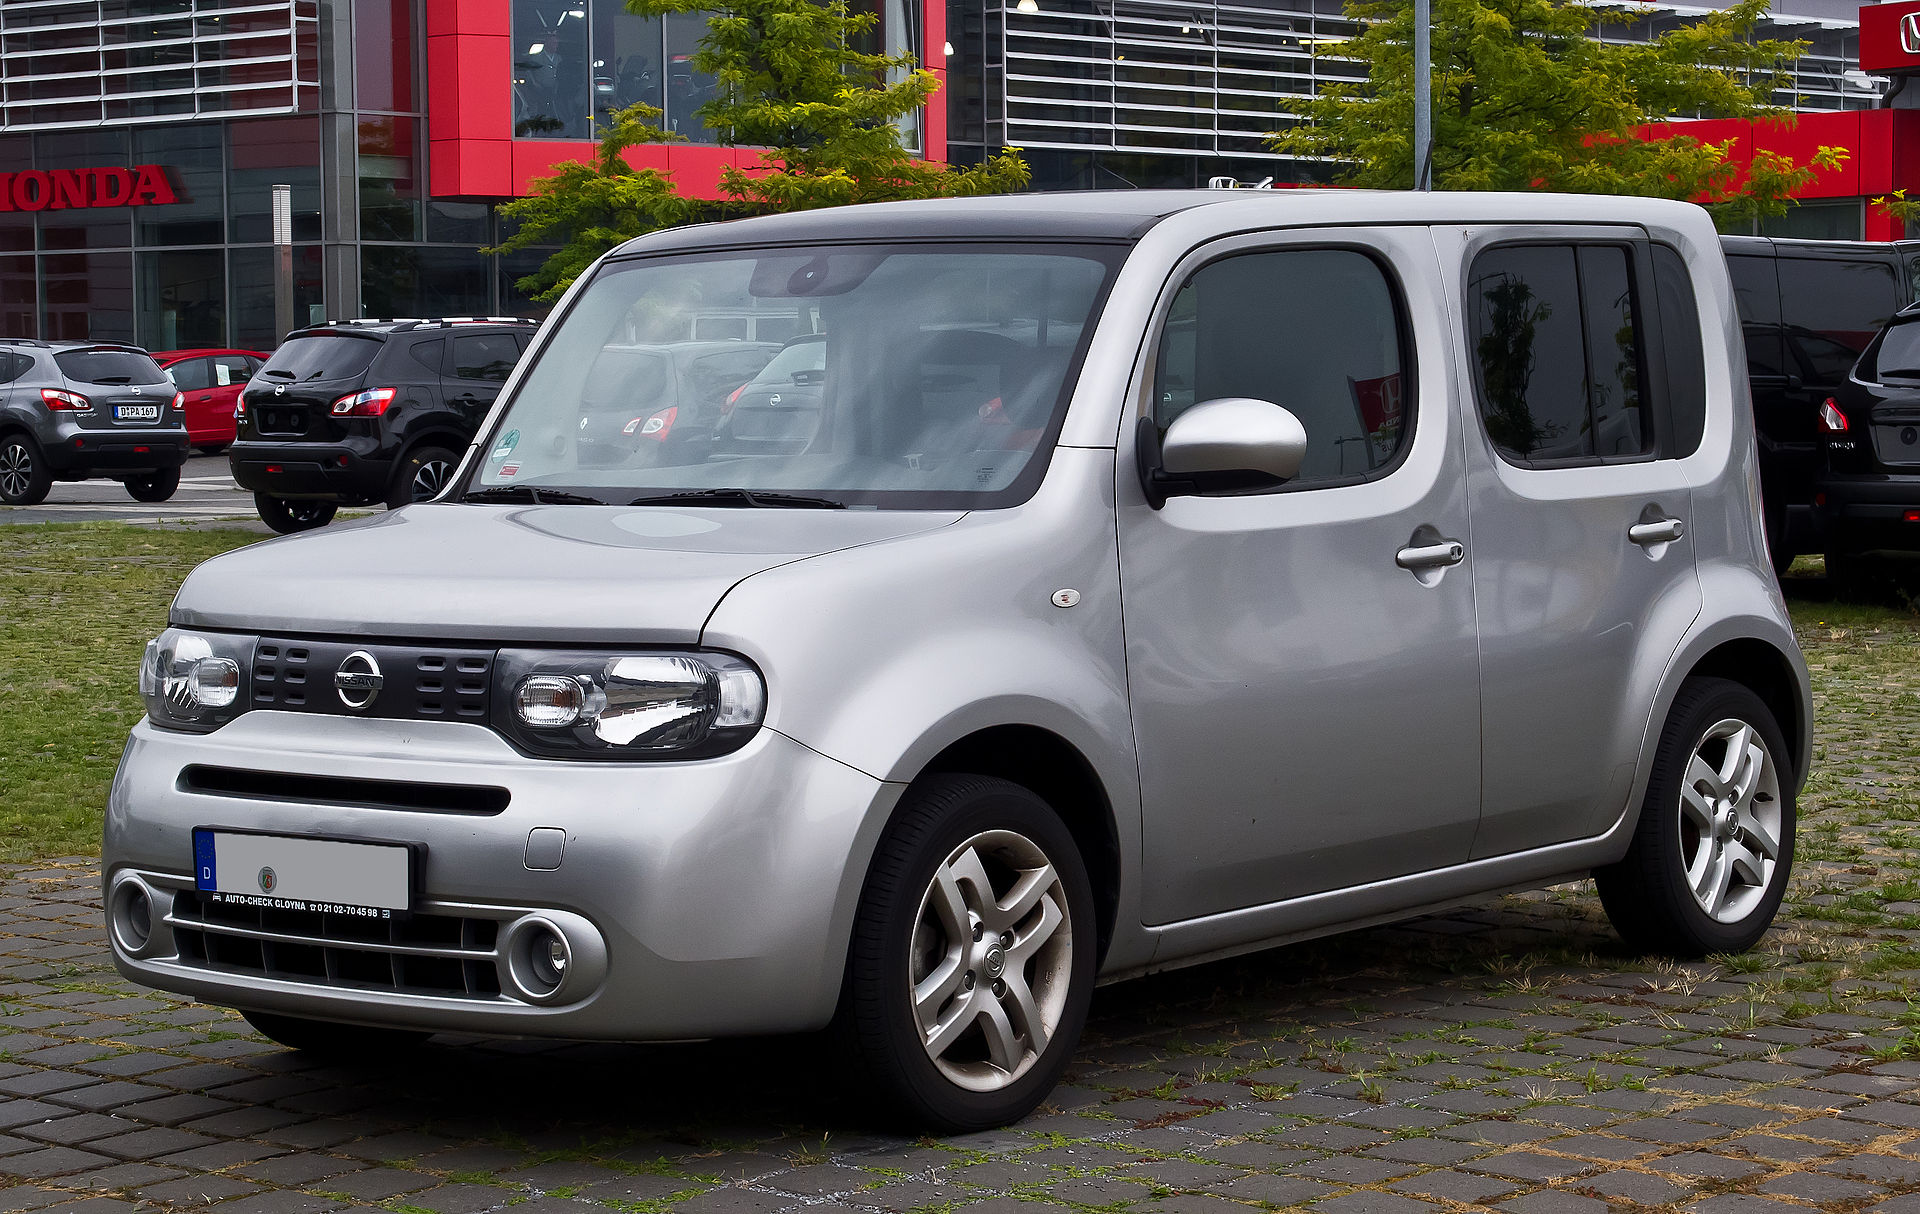 2002 Nissan Cube EX related infomation,specifications ...  |2002 Nissan Cube